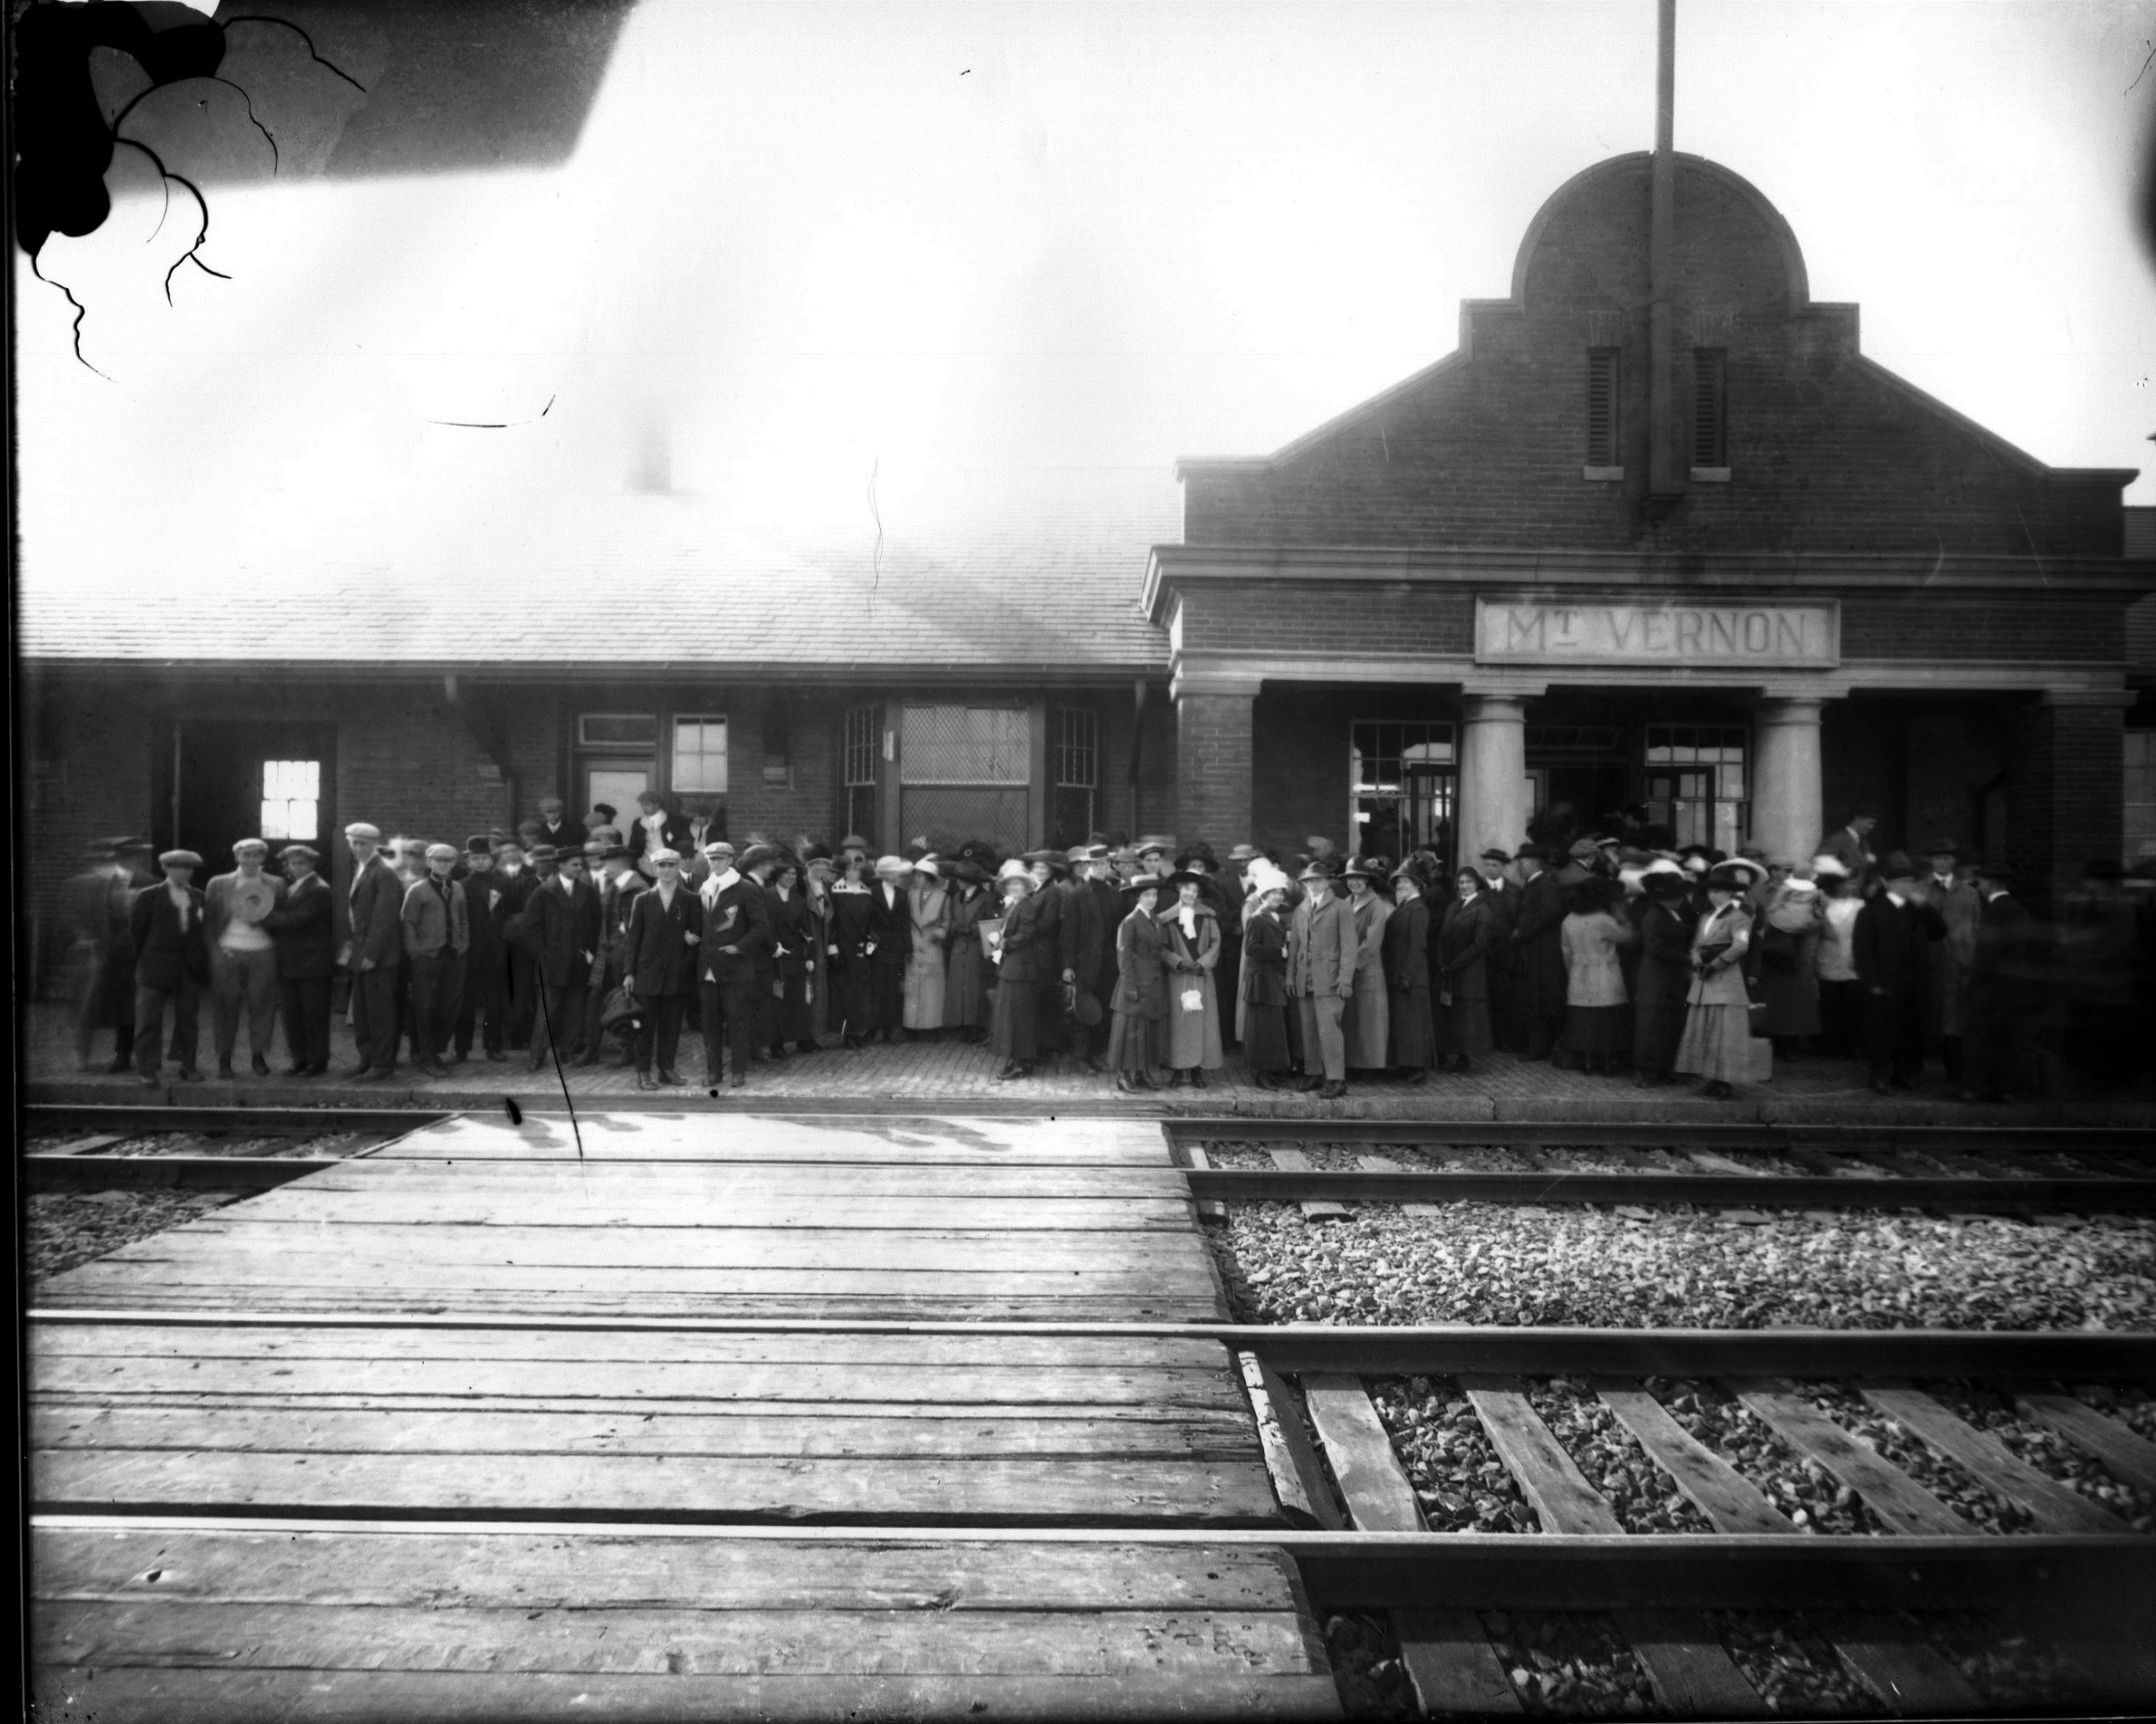 photo of Train Depot